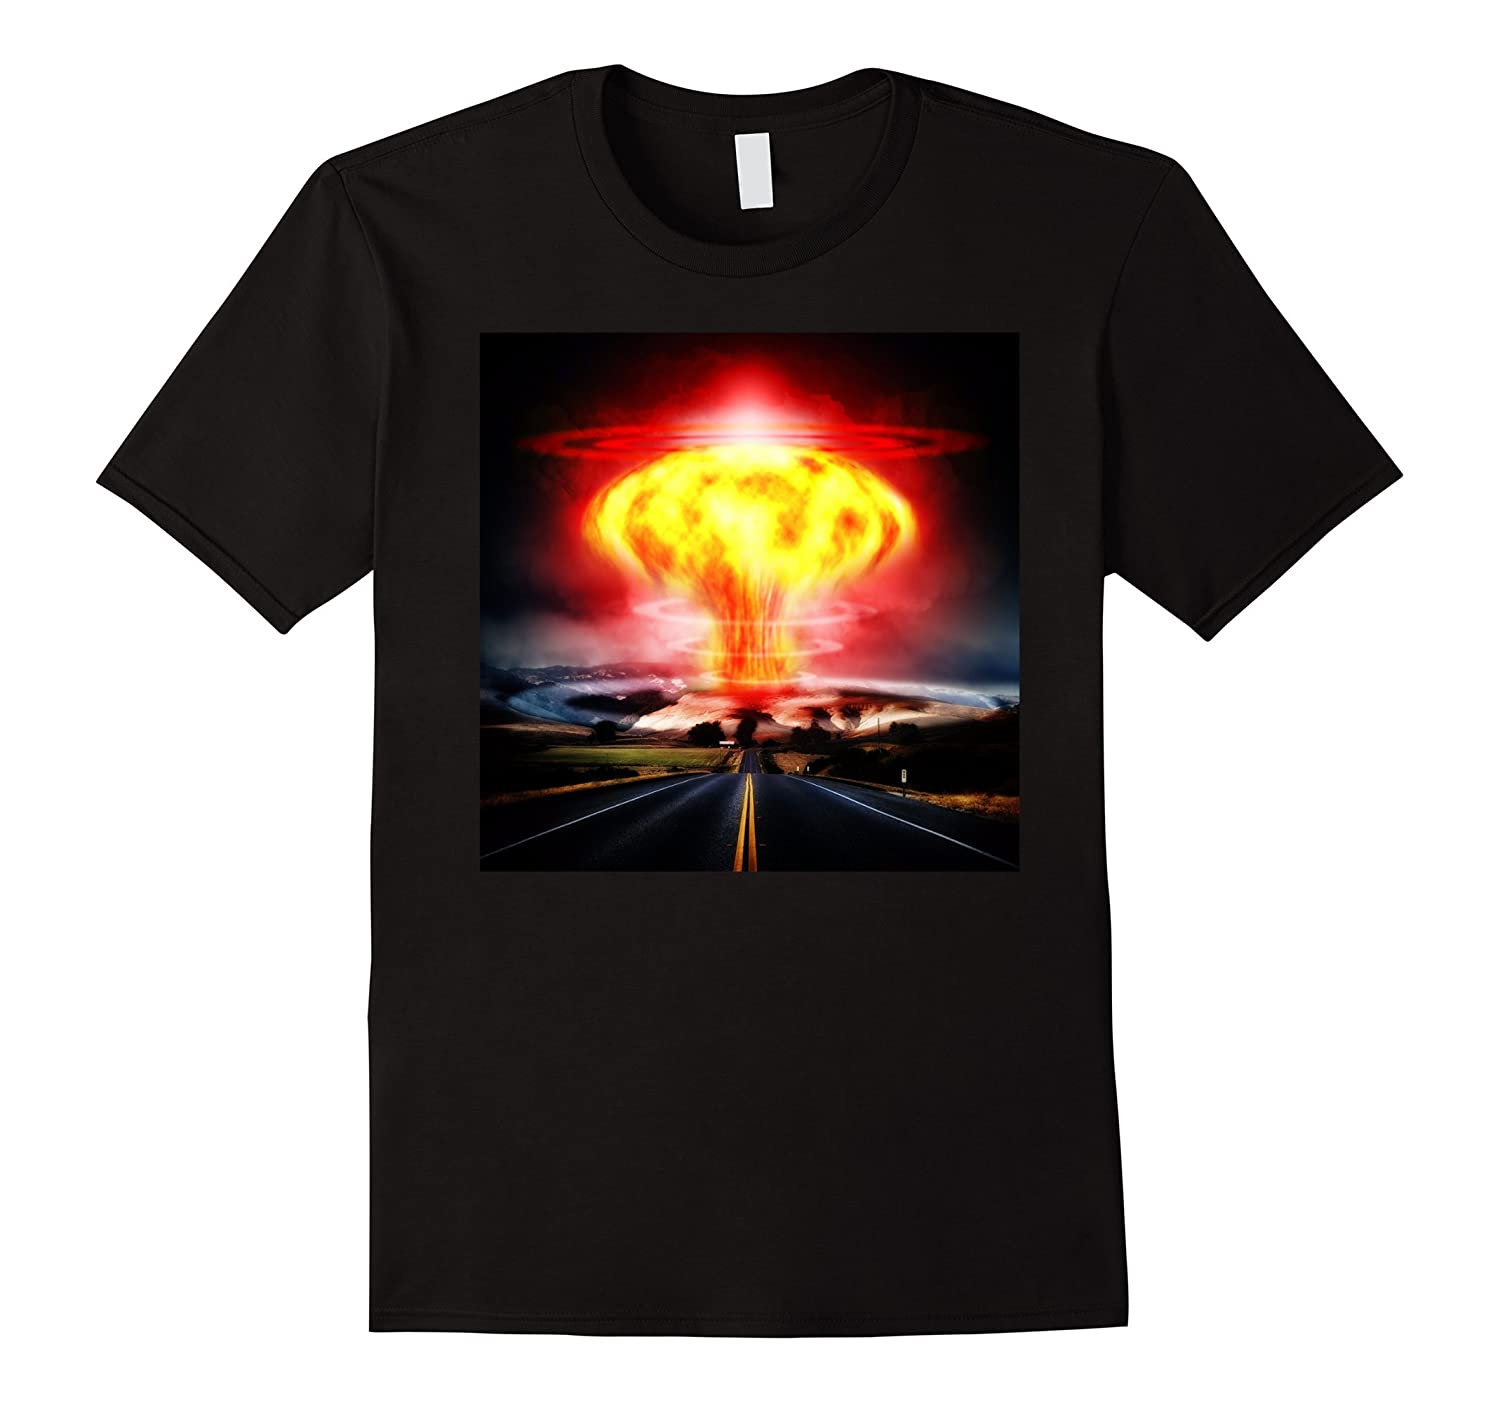 NUCLEAR BLAST EXPLOSION FALLOUT RADIATION T-SHIRT-TH